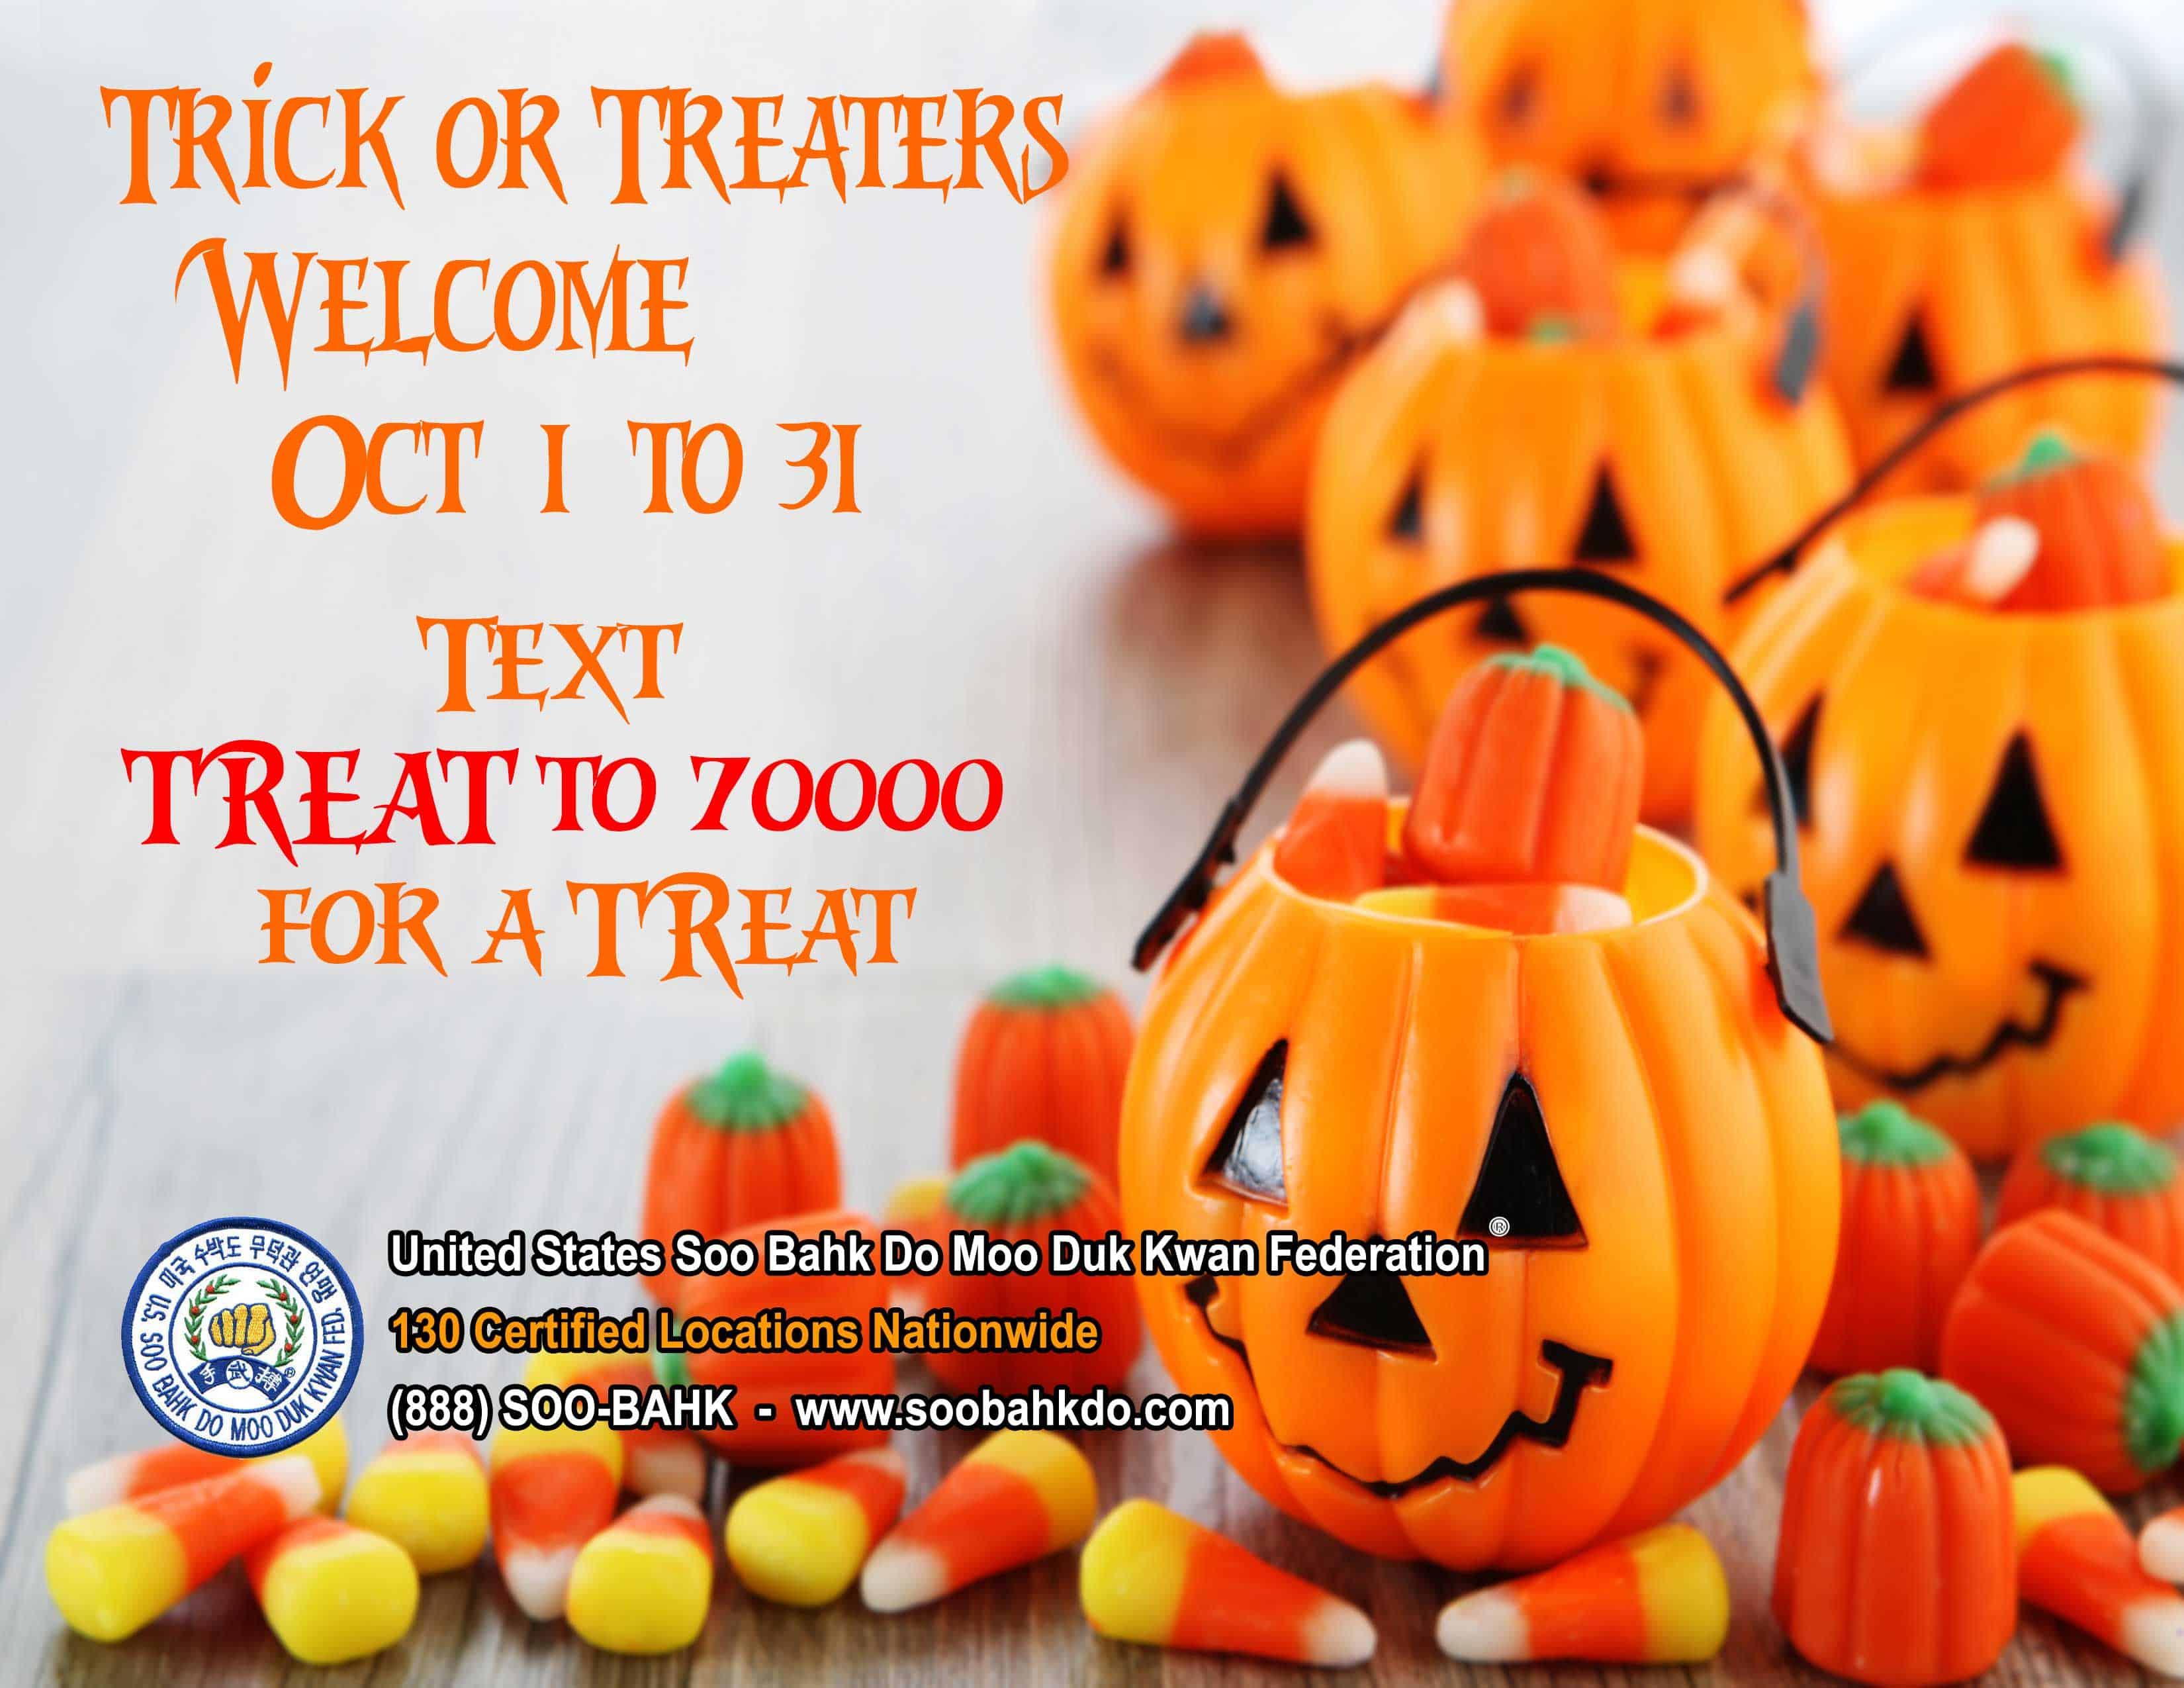 Trick Or Treaters Welcome!<br /><span style='font-family: arial, helvetica, sans-serif; font-size: 12pt; color: teal;'>Have you ever Trick or Treated for Halloween by  Text Message?</span>